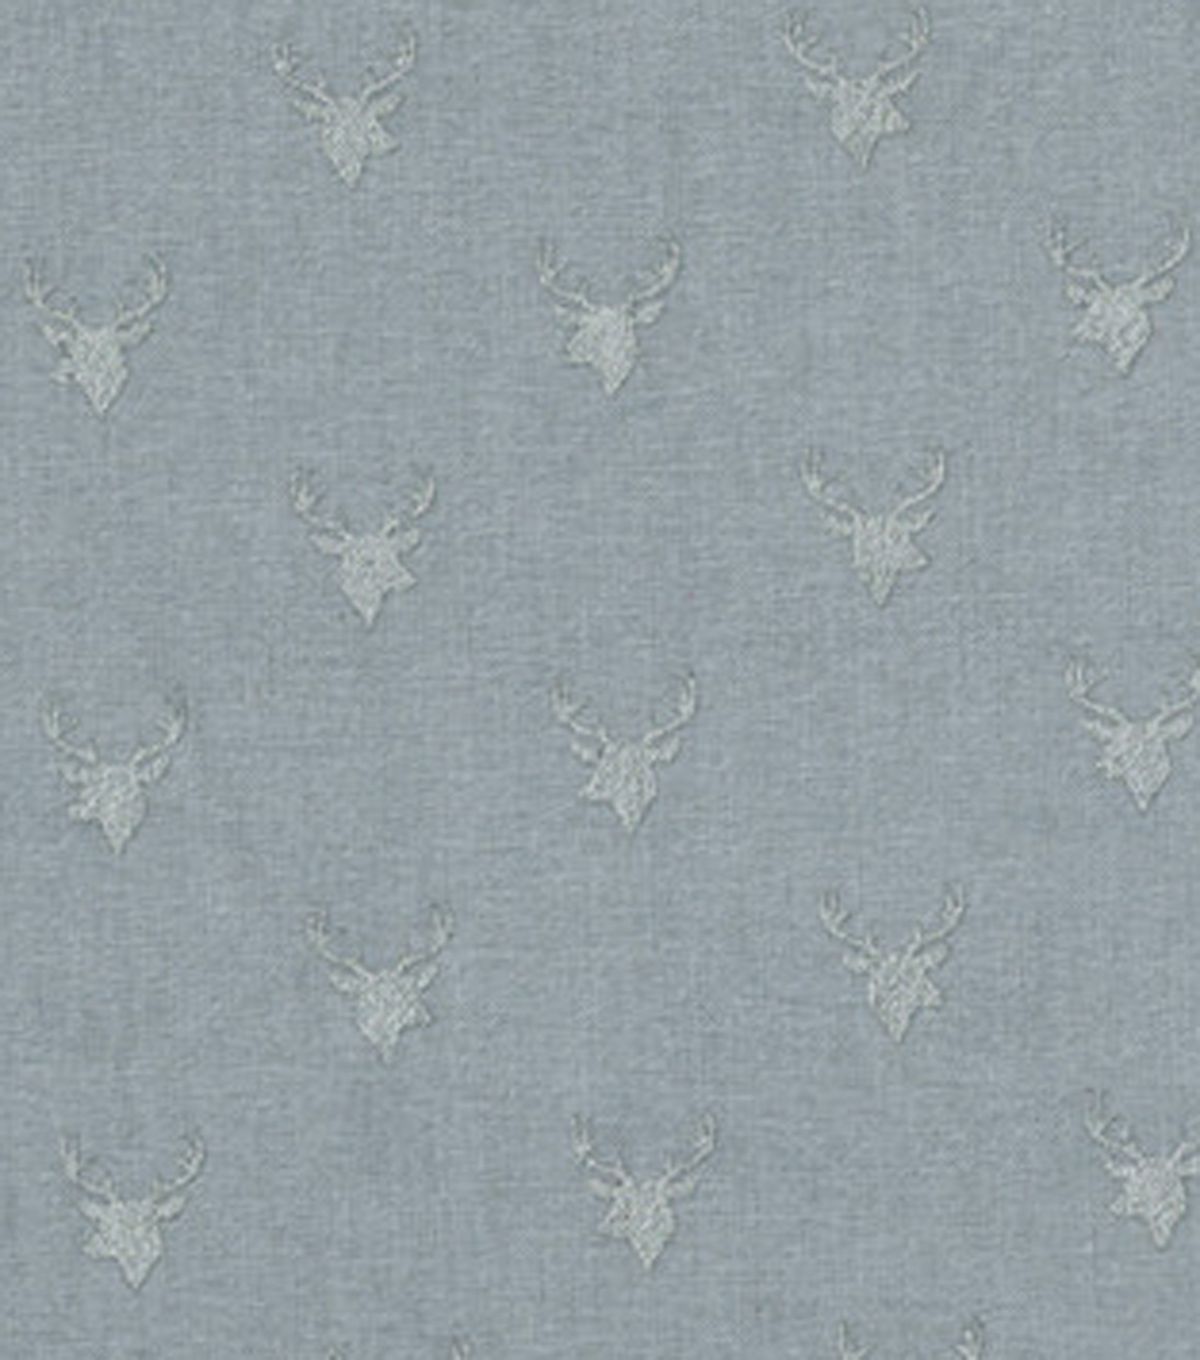 Keepsake Calico™ Cotton Fabric-Deer Heads On Gray With Silver Metallic